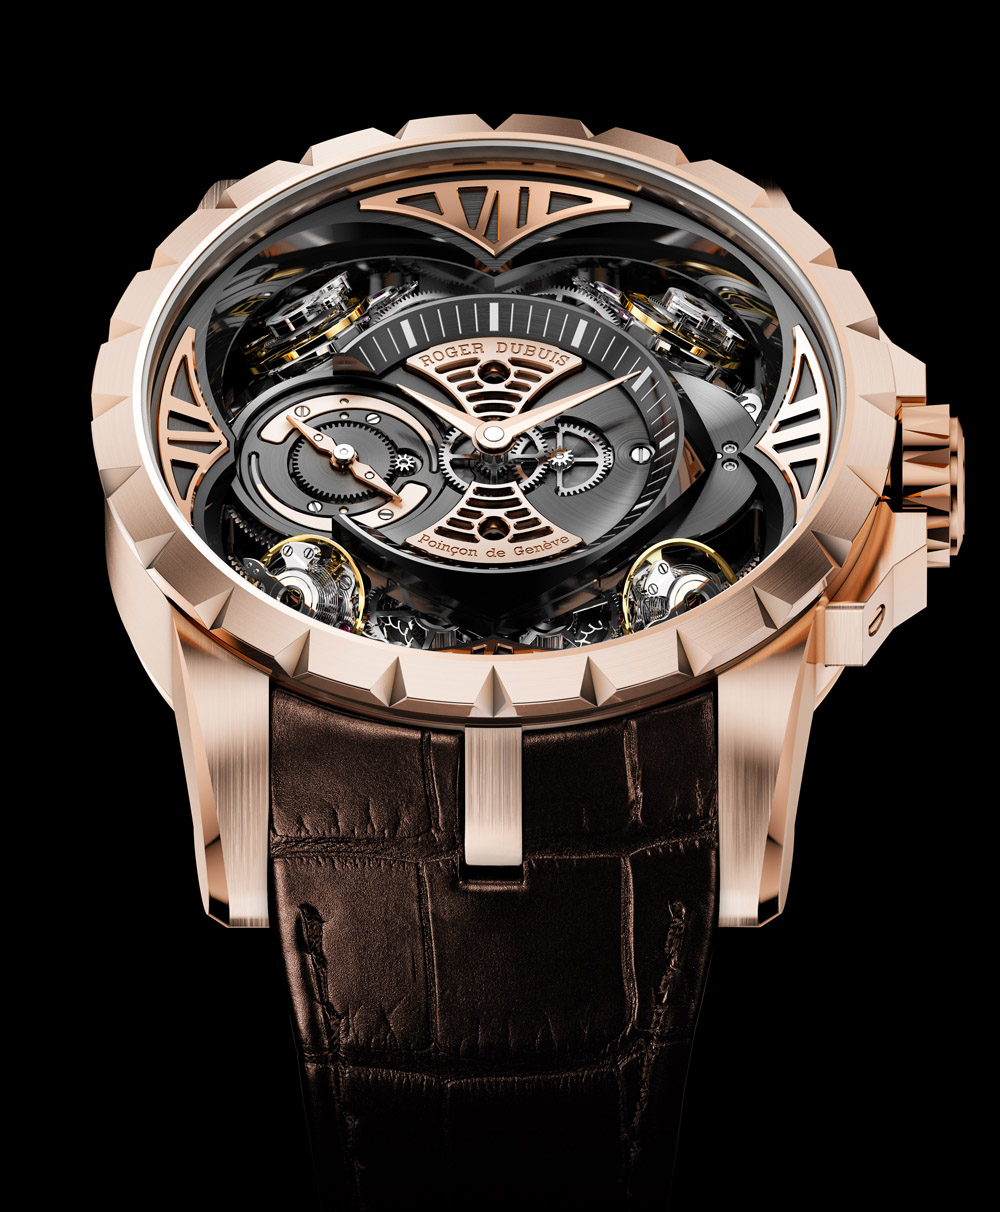 Movement: Caliber RD0101 manual-winding movement; hours and minutes; 40-hour power reserve and indication | Case: 48mm in pink gold